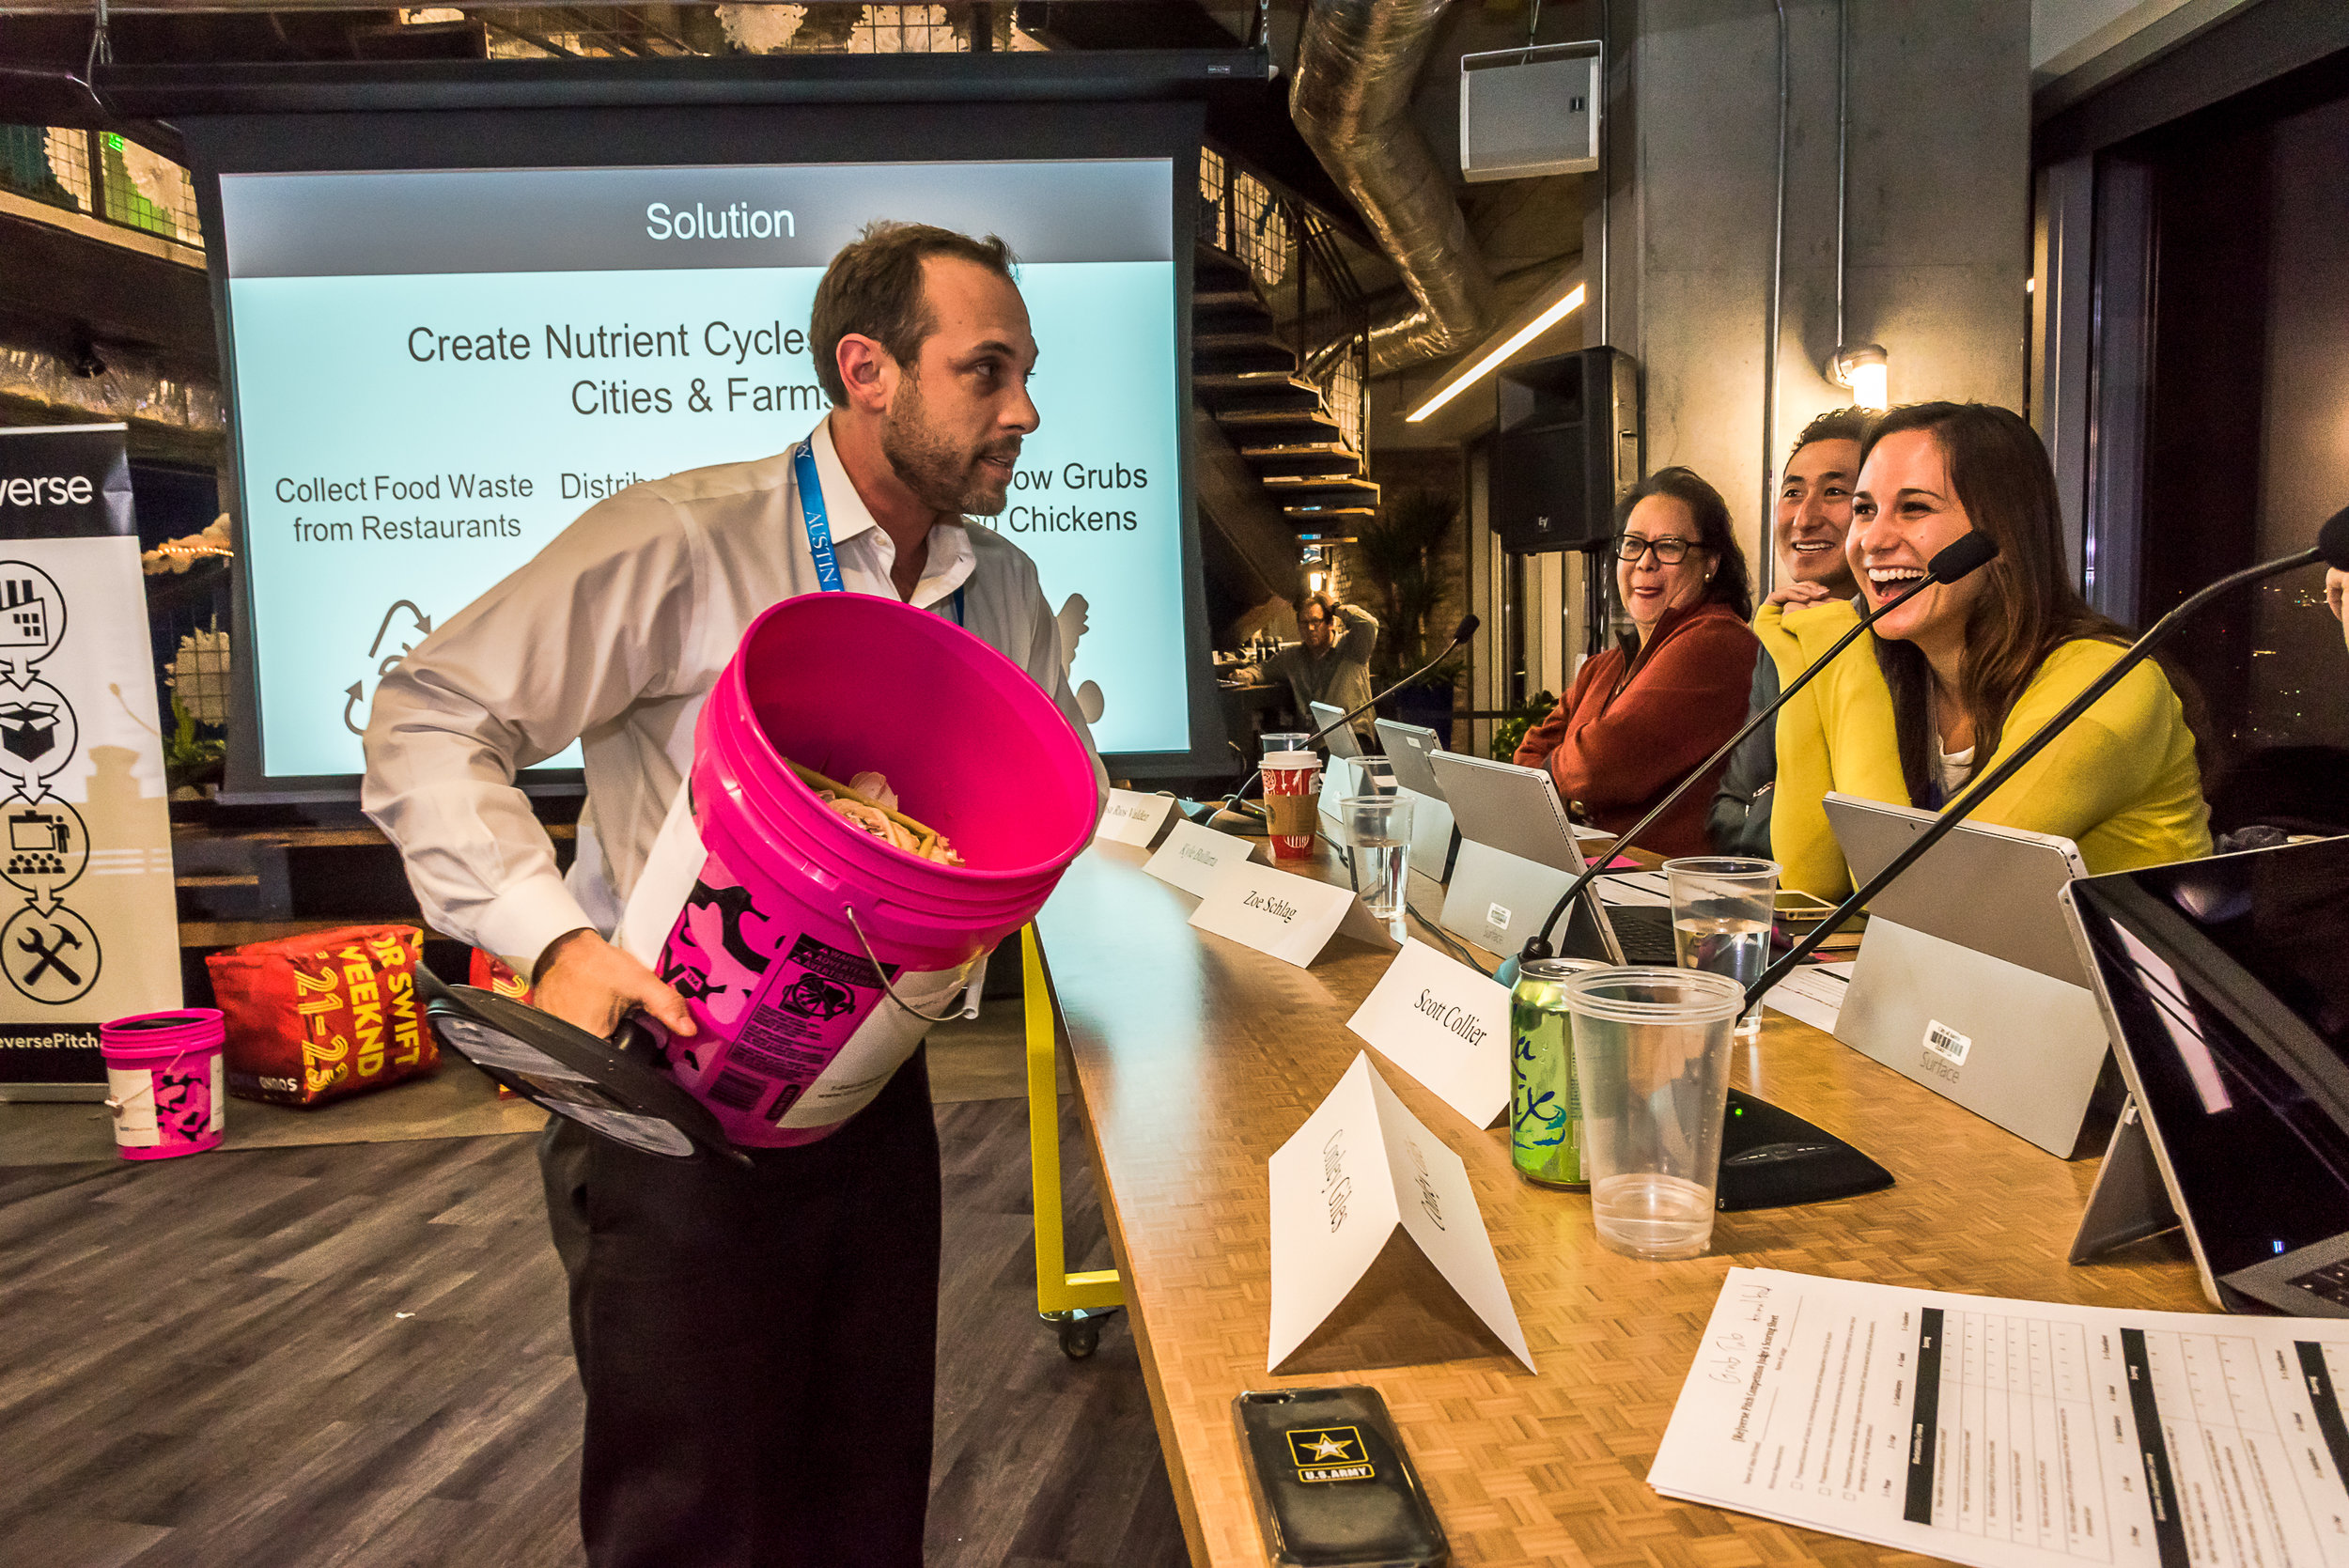 Robert Olivier of GrubTubs shows a sample food scrap collector to the 2016 [Re]verse Pitch judges. Judges pictured, from front to back: Zoe Schlag, Kyle Ballarta, and Rosa Rios Valdez. Photo credit: Michael Knox